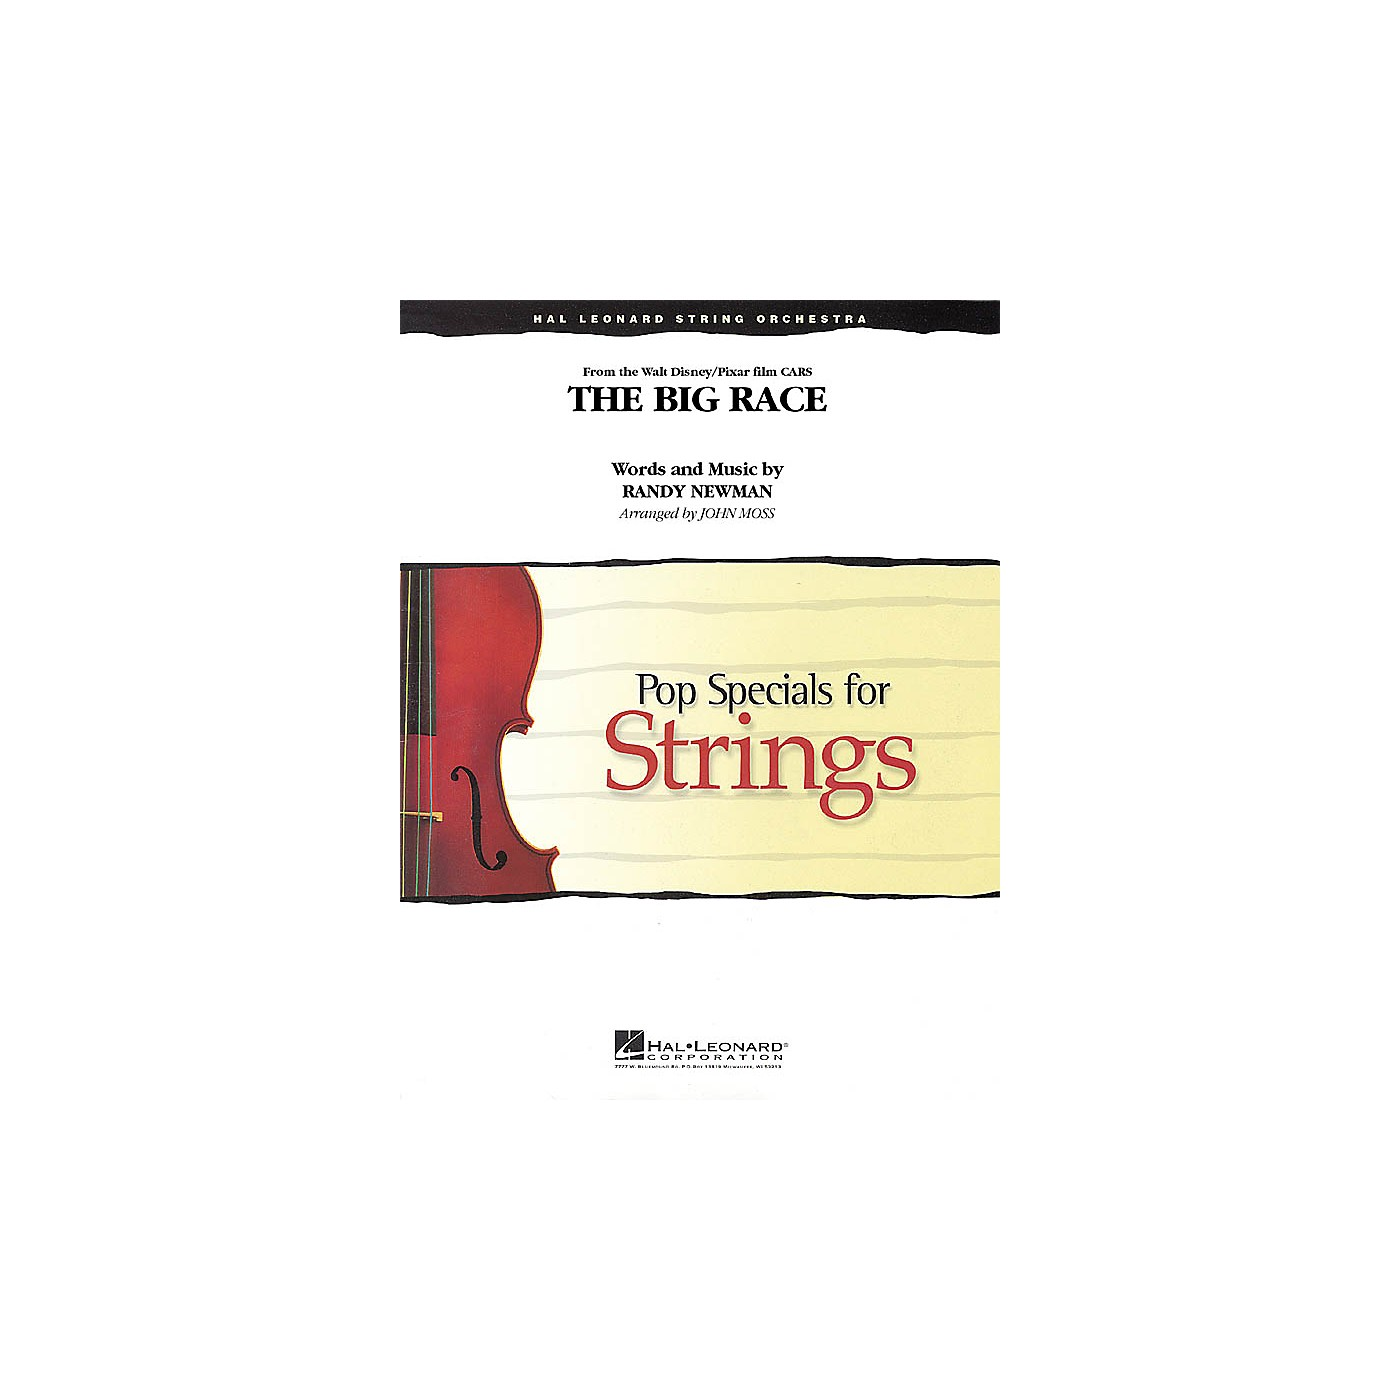 Hal Leonard The Big Race (from Cars) Pop Specials for Strings Series Softcover Arranged by John Moss thumbnail